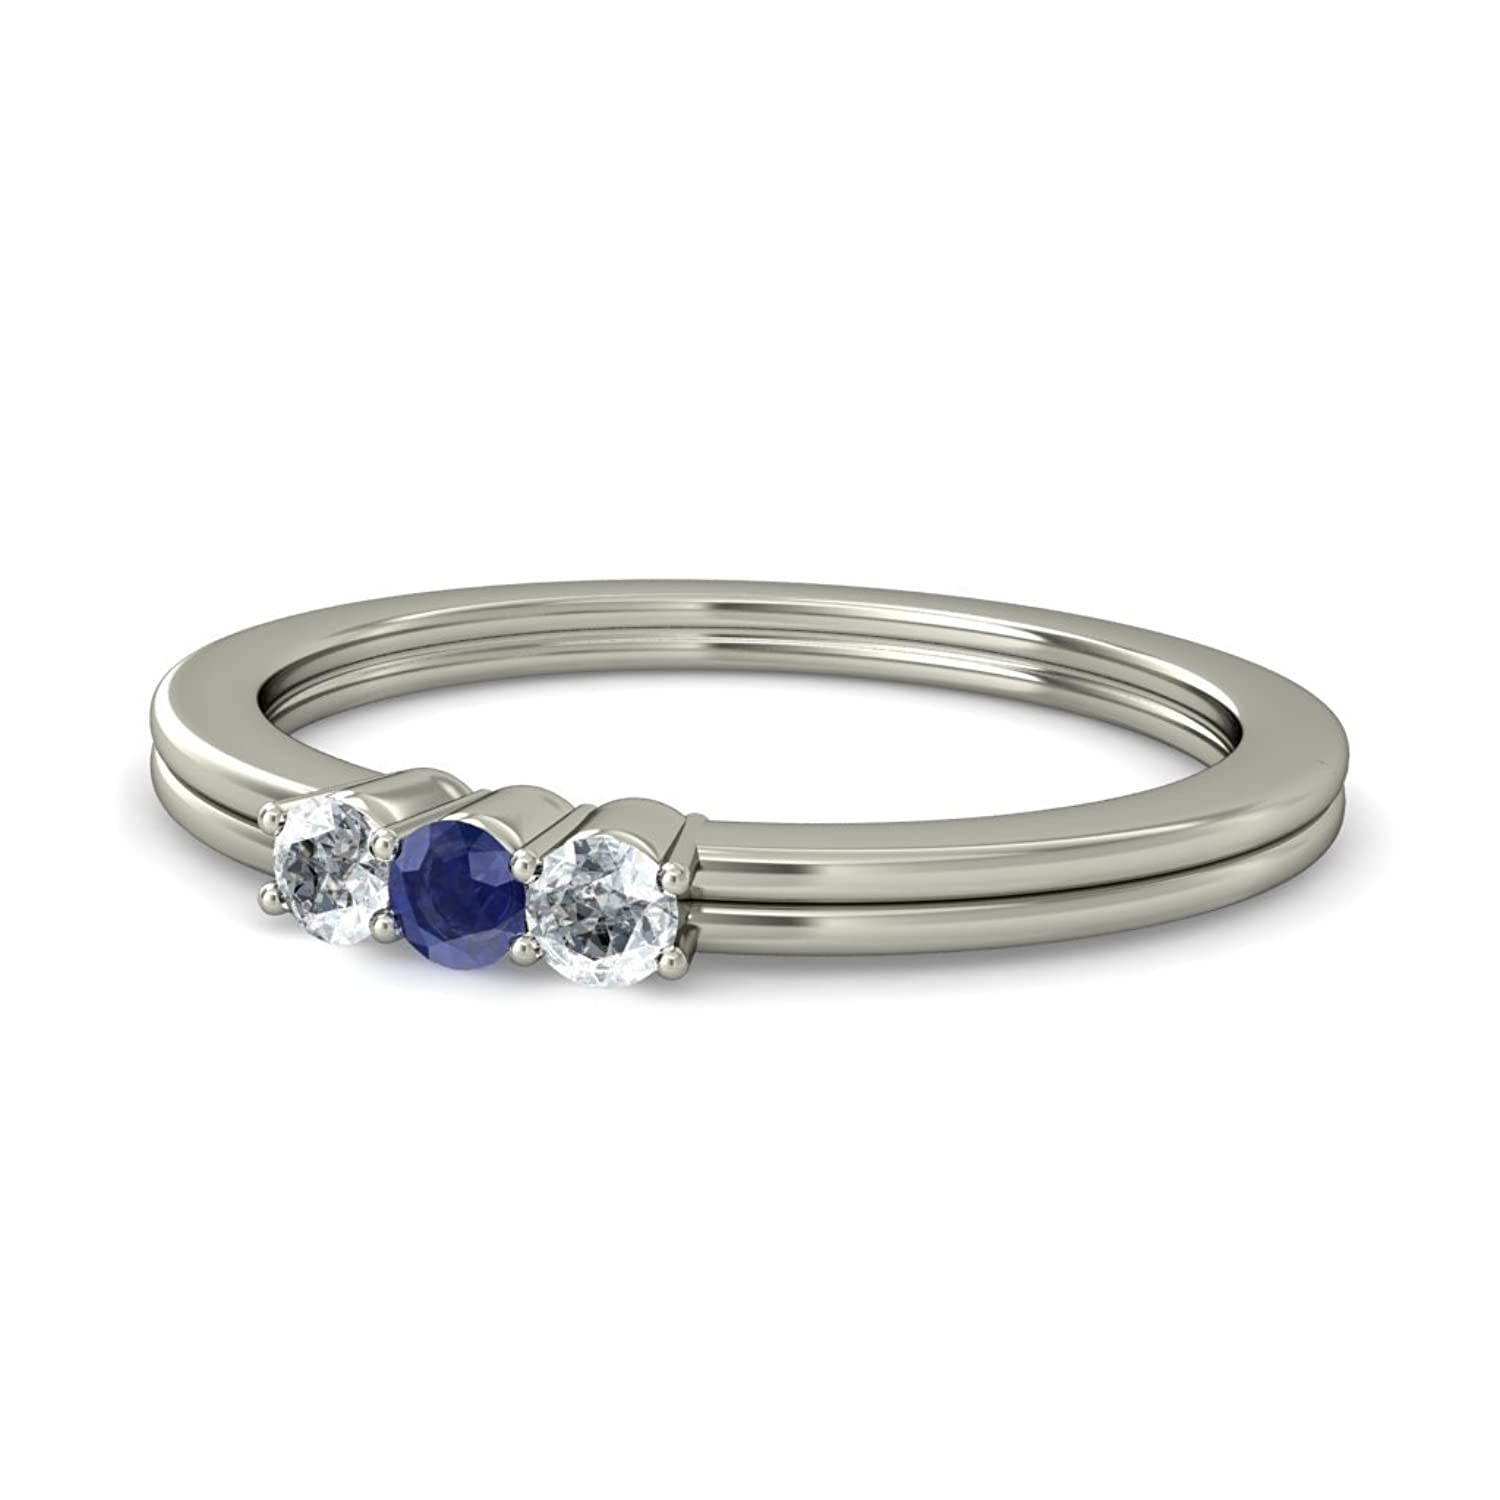 arbor image solitaire bluestone ceylon sapphire ring products brunswick